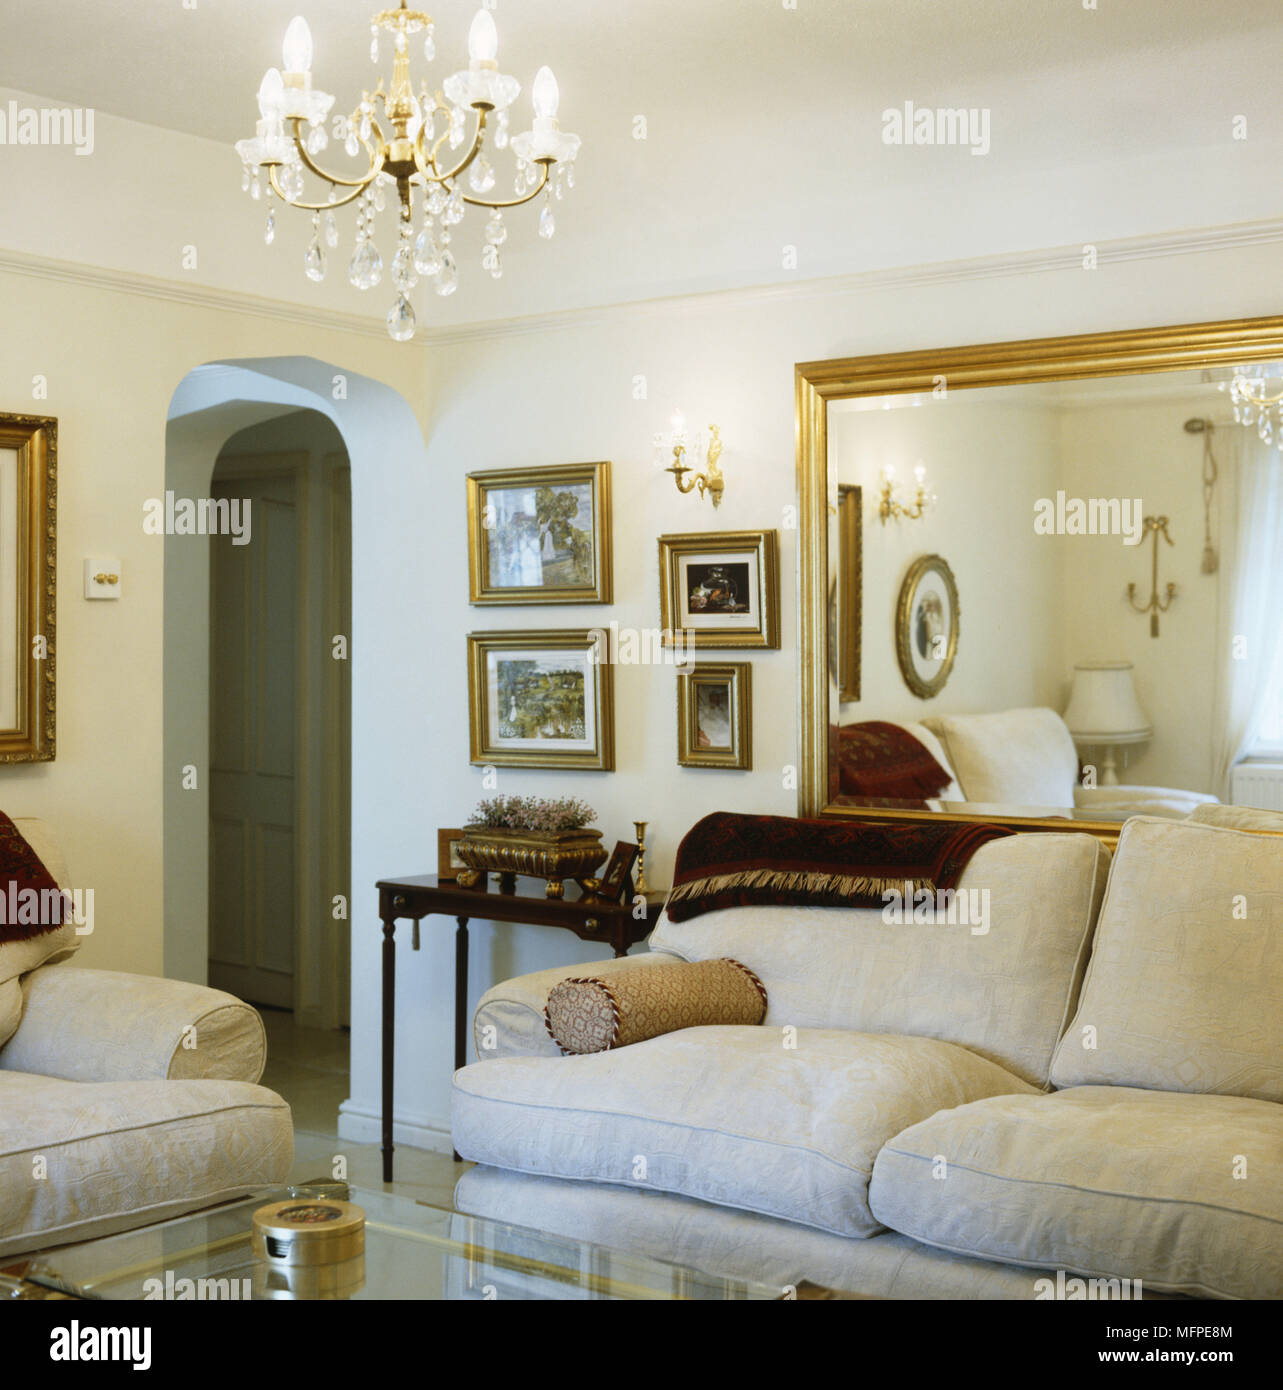 A traditional sitting room with a chandelier above two sofas in ...